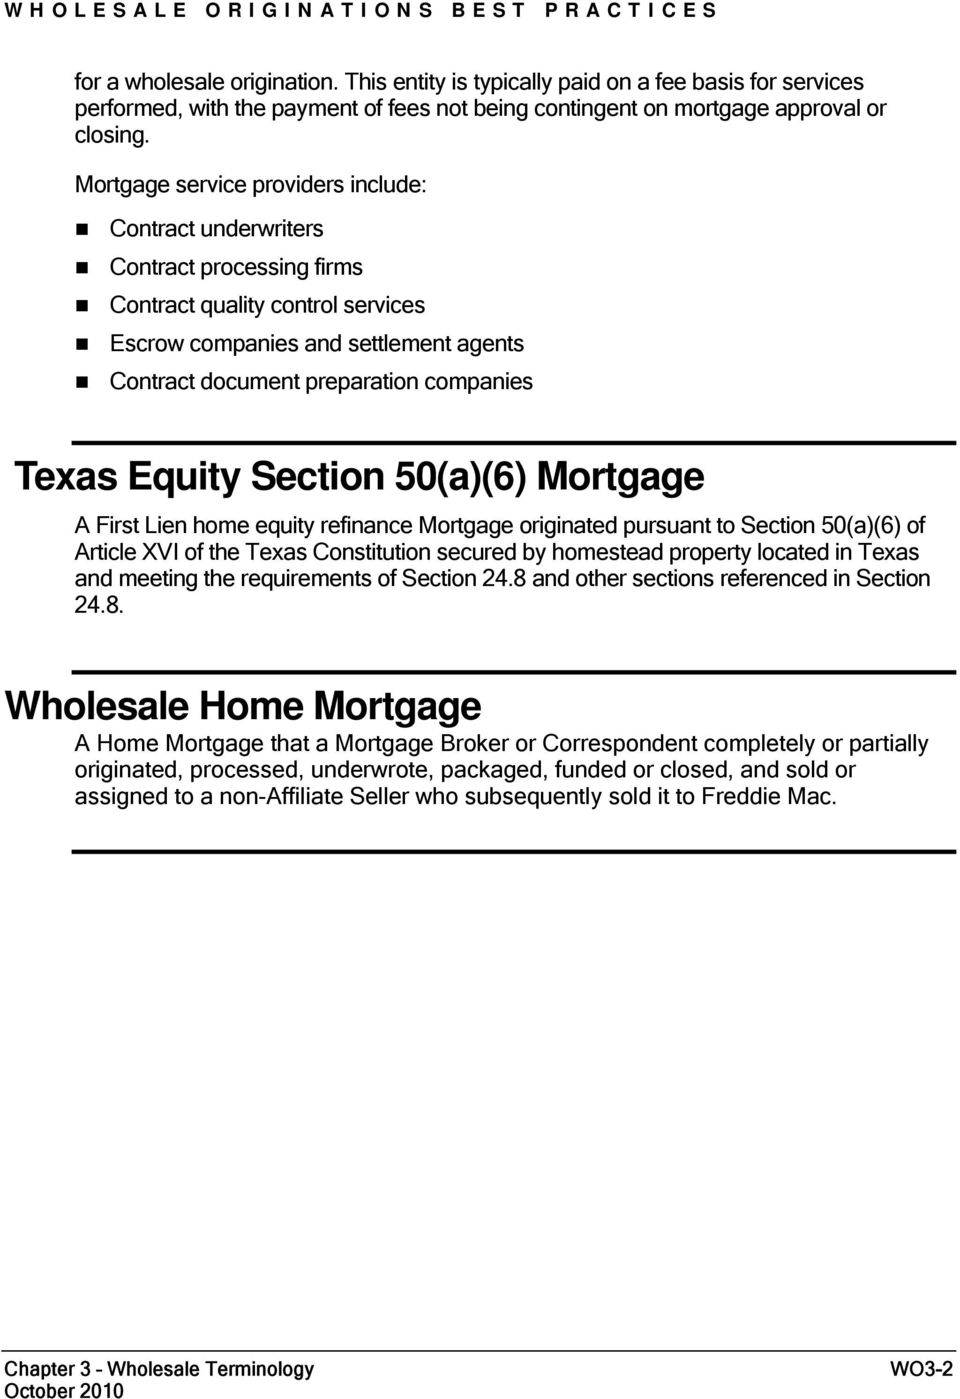 Texas Equity Section 50(a)(6) Mortgage A First Lien home equity refinance Mortgage originated pursuant to Section 50(a)(6) of Article XVI of the Texas Constitution secured by homestead property